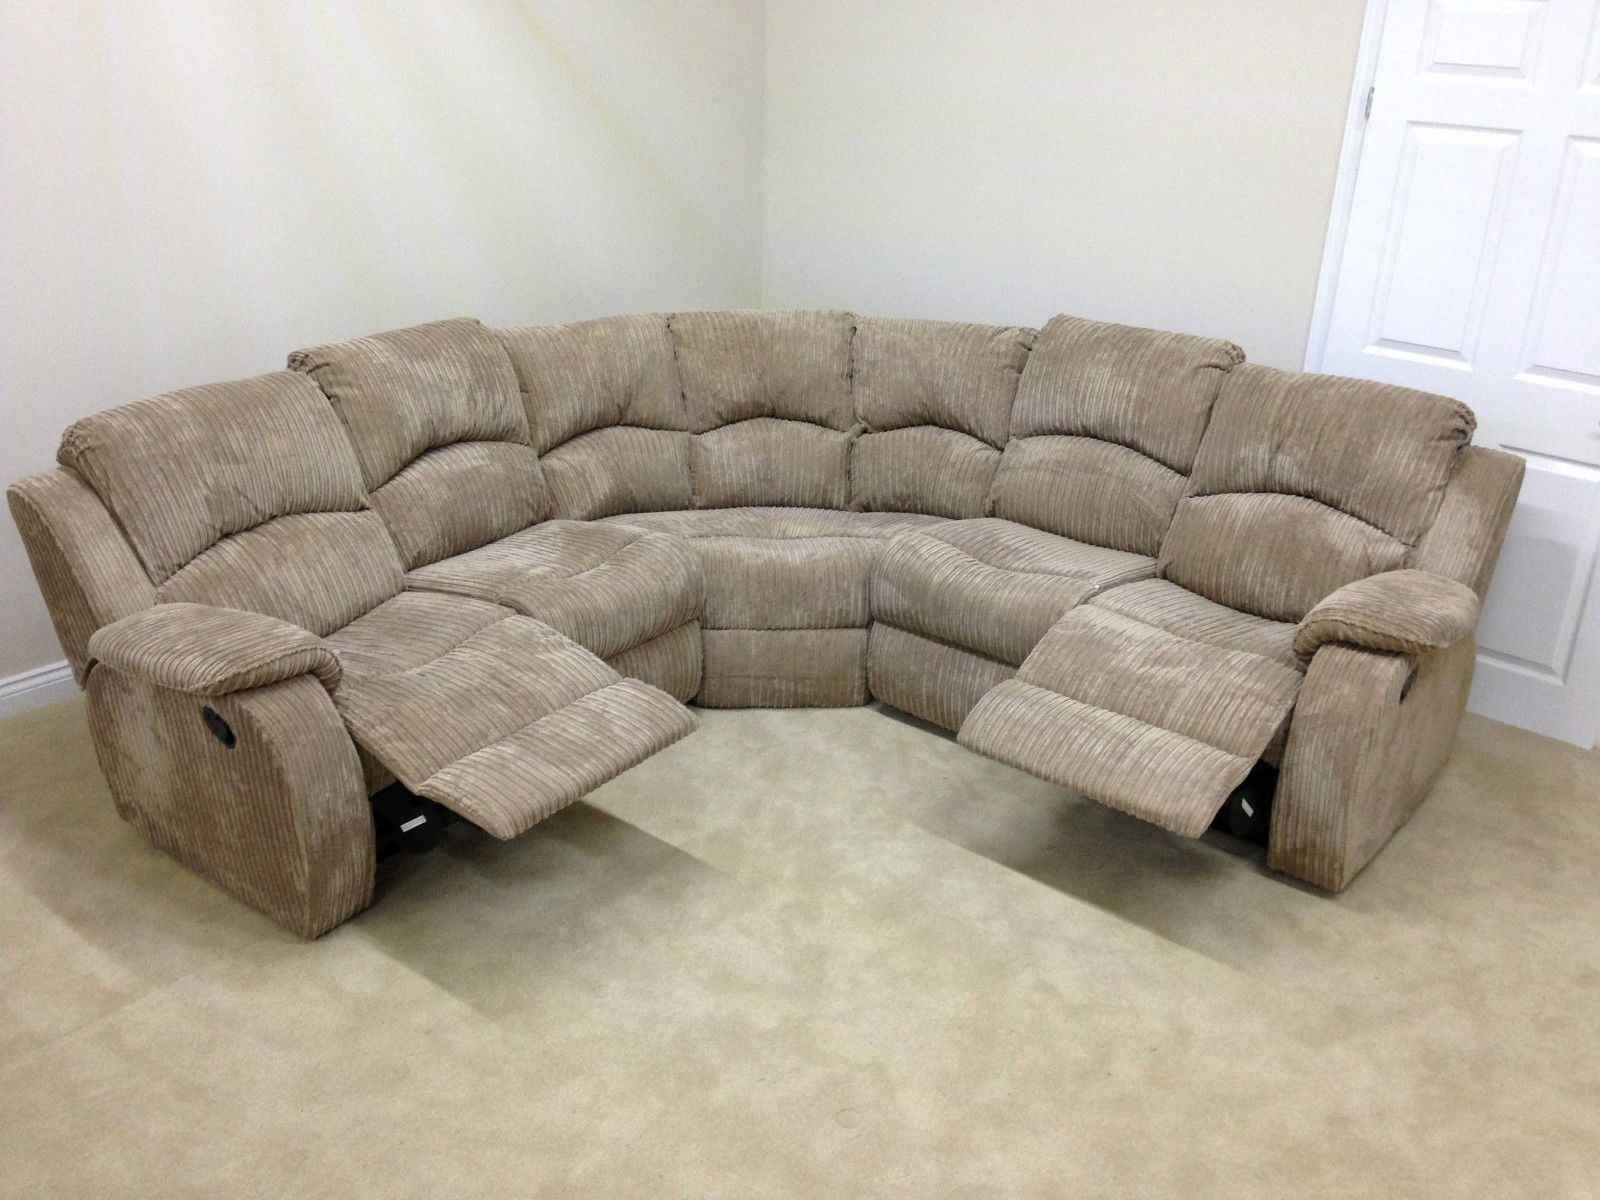 Lovely Corner Reclining sofa Image Corner Reclining sofa ...